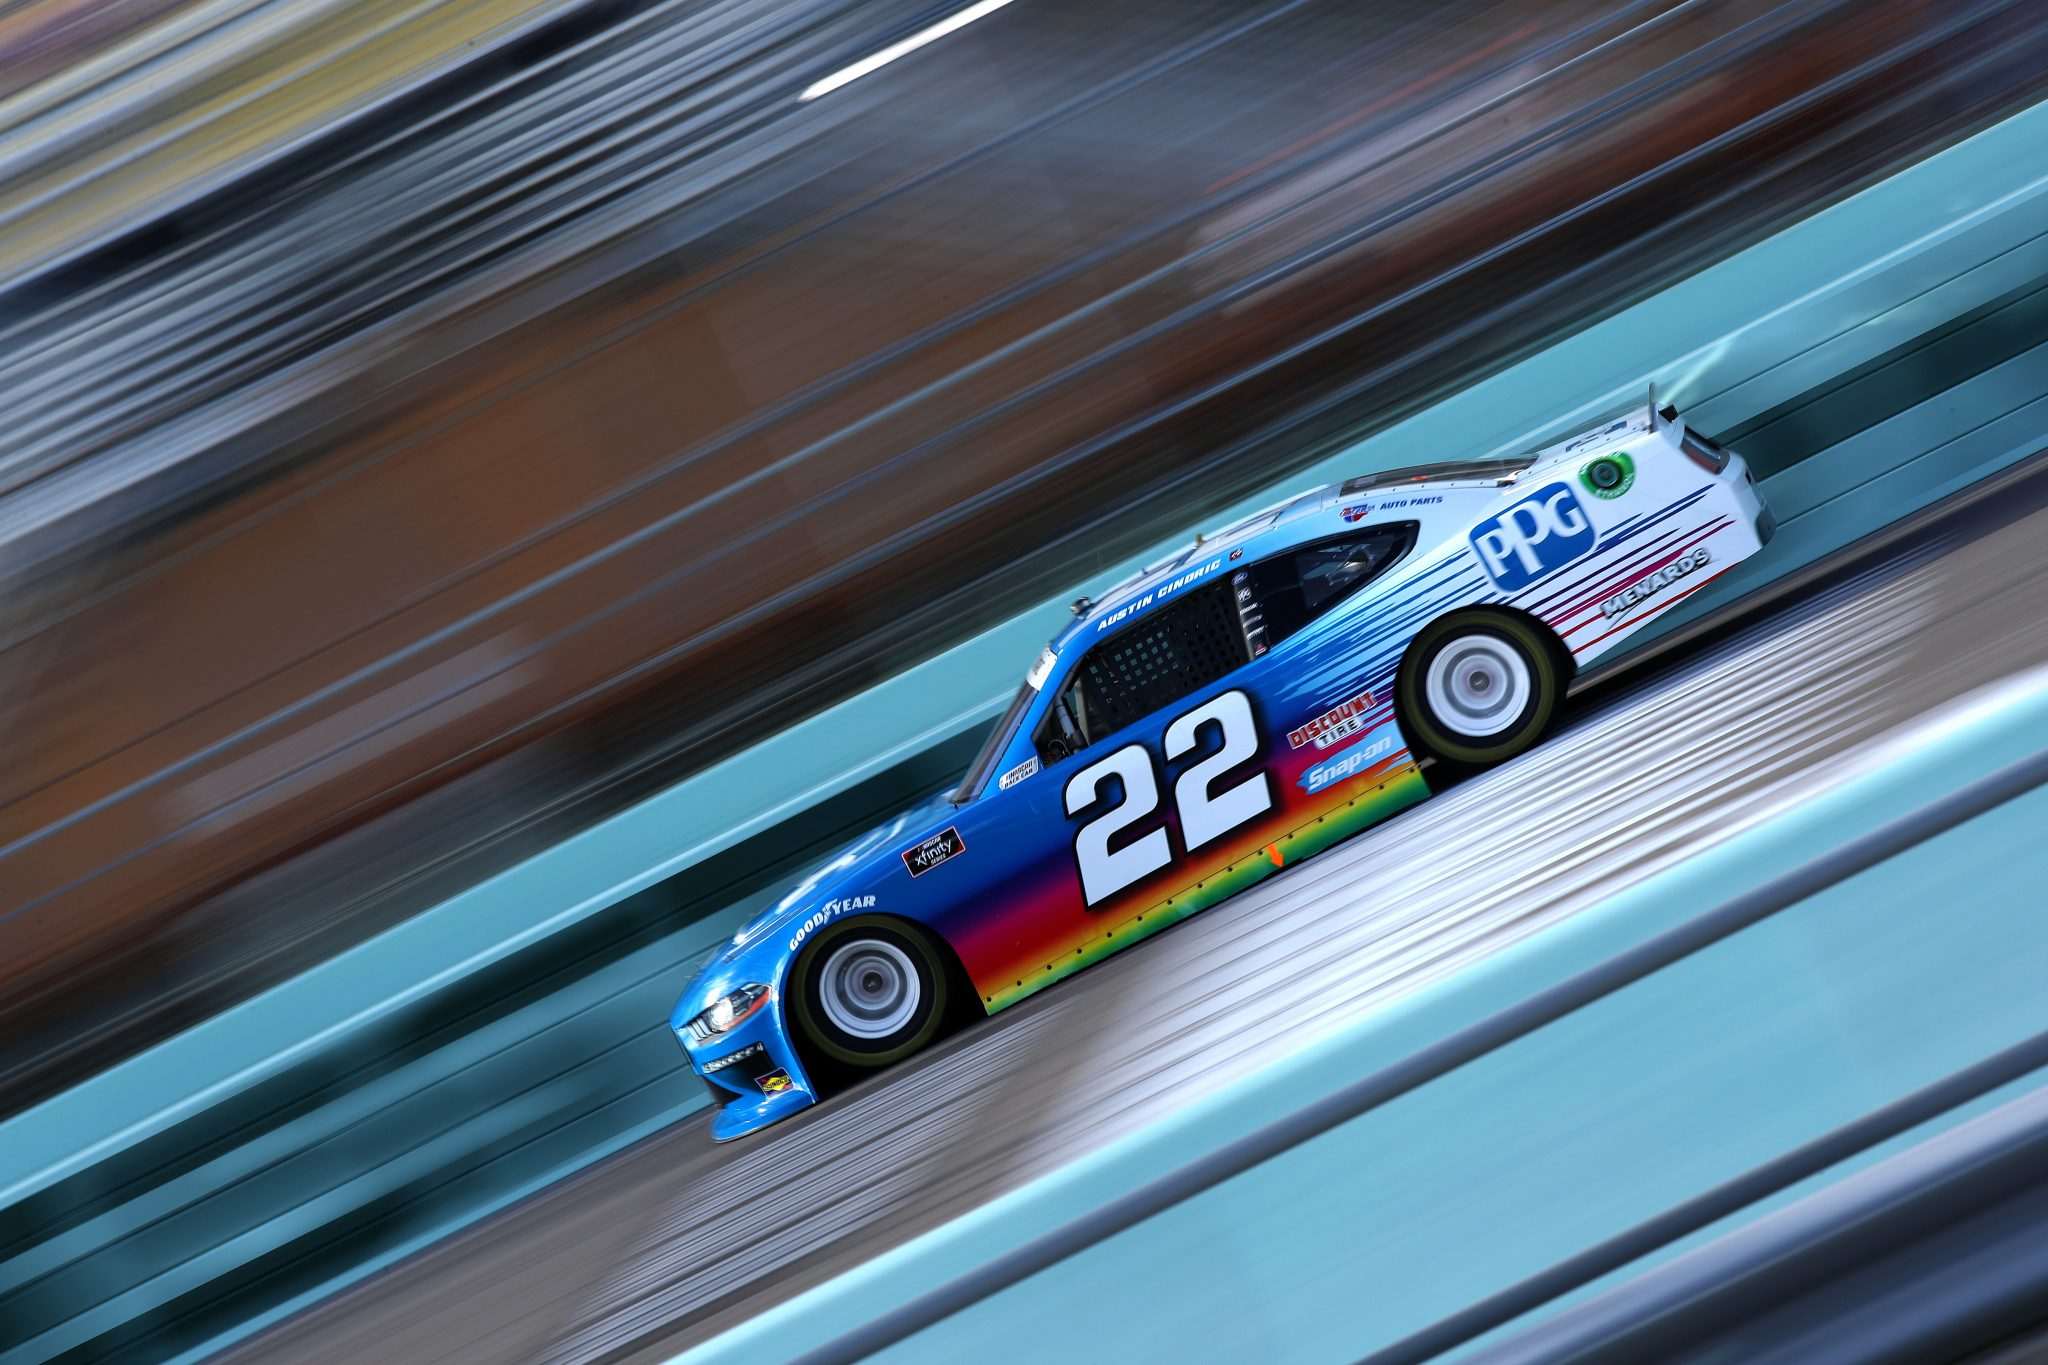 HOMESTEAD, FLORIDA - FEBRUARY 27: Austin Cindric, driver of the #22 PPG Ford, drives during the NASCAR Xfinity Series Contender Boats 250 at Homestead-Miami Speedway on February 27, 2021 in Homestead, Florida. (Photo by Sean Gardner/Getty Images) | Getty Images